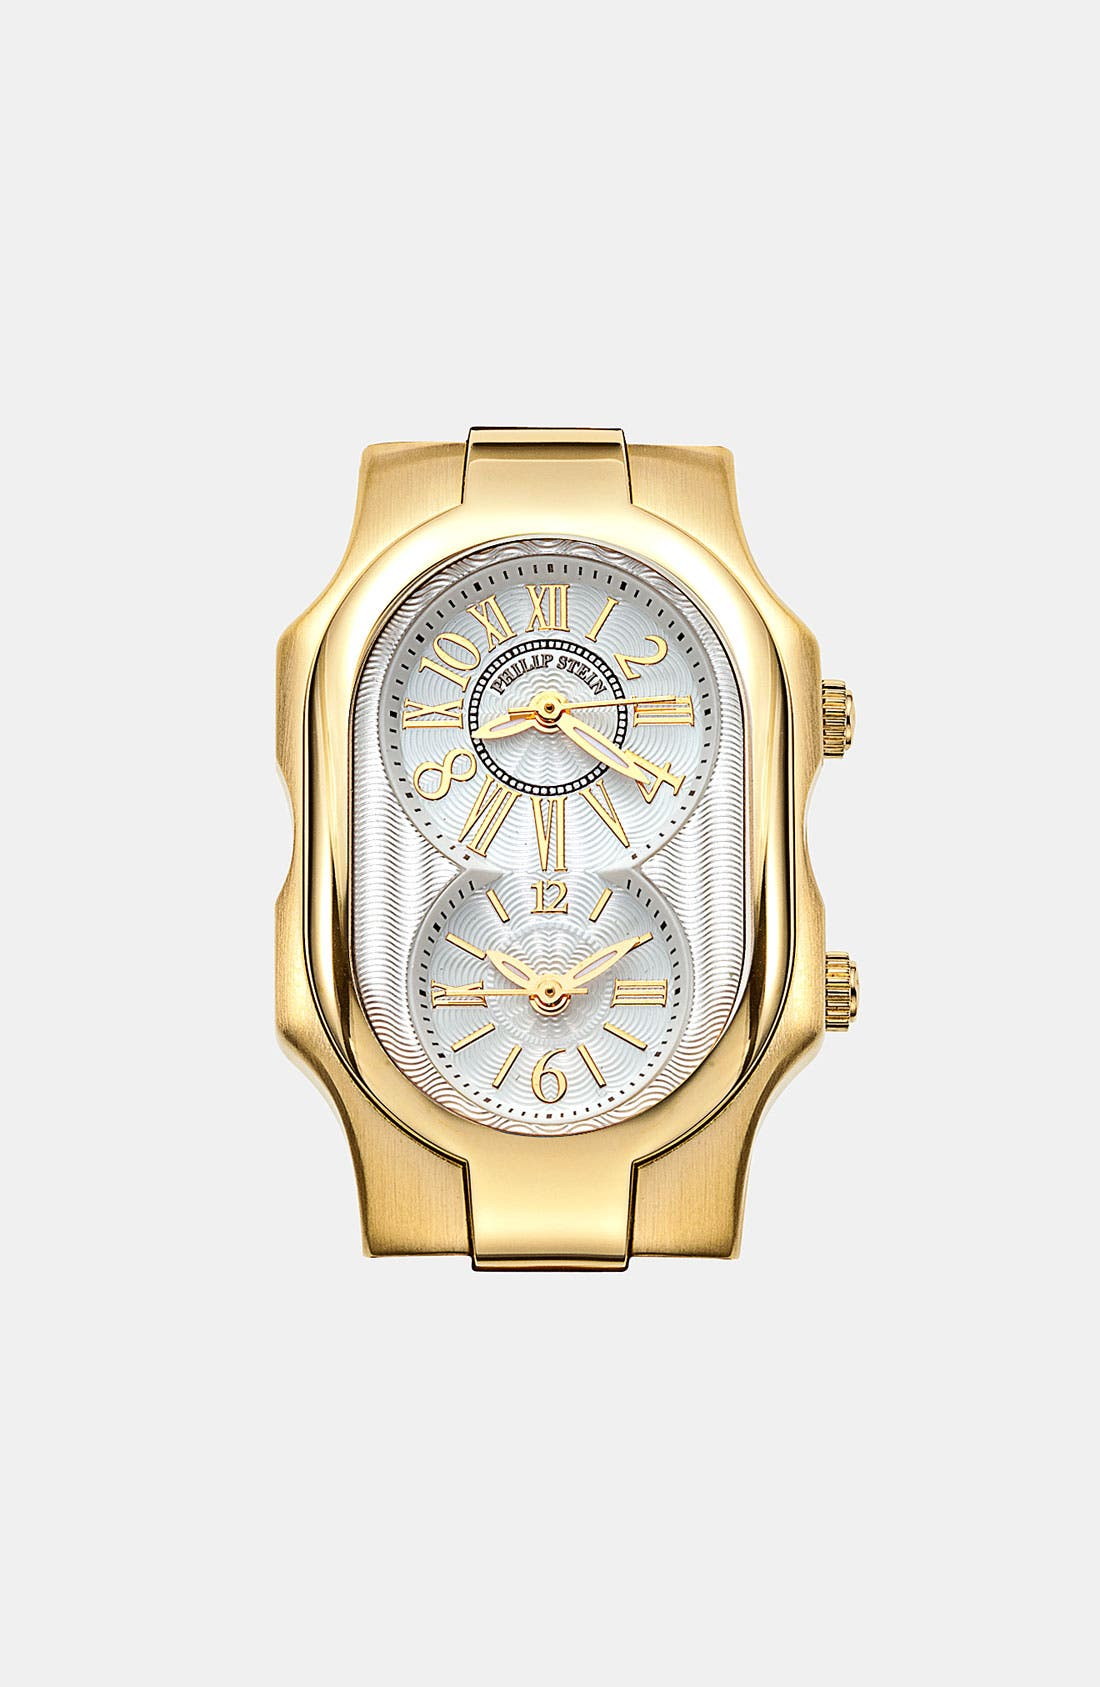 Main Image - Philip Stein® 'Signature' Small Gold Watch Case